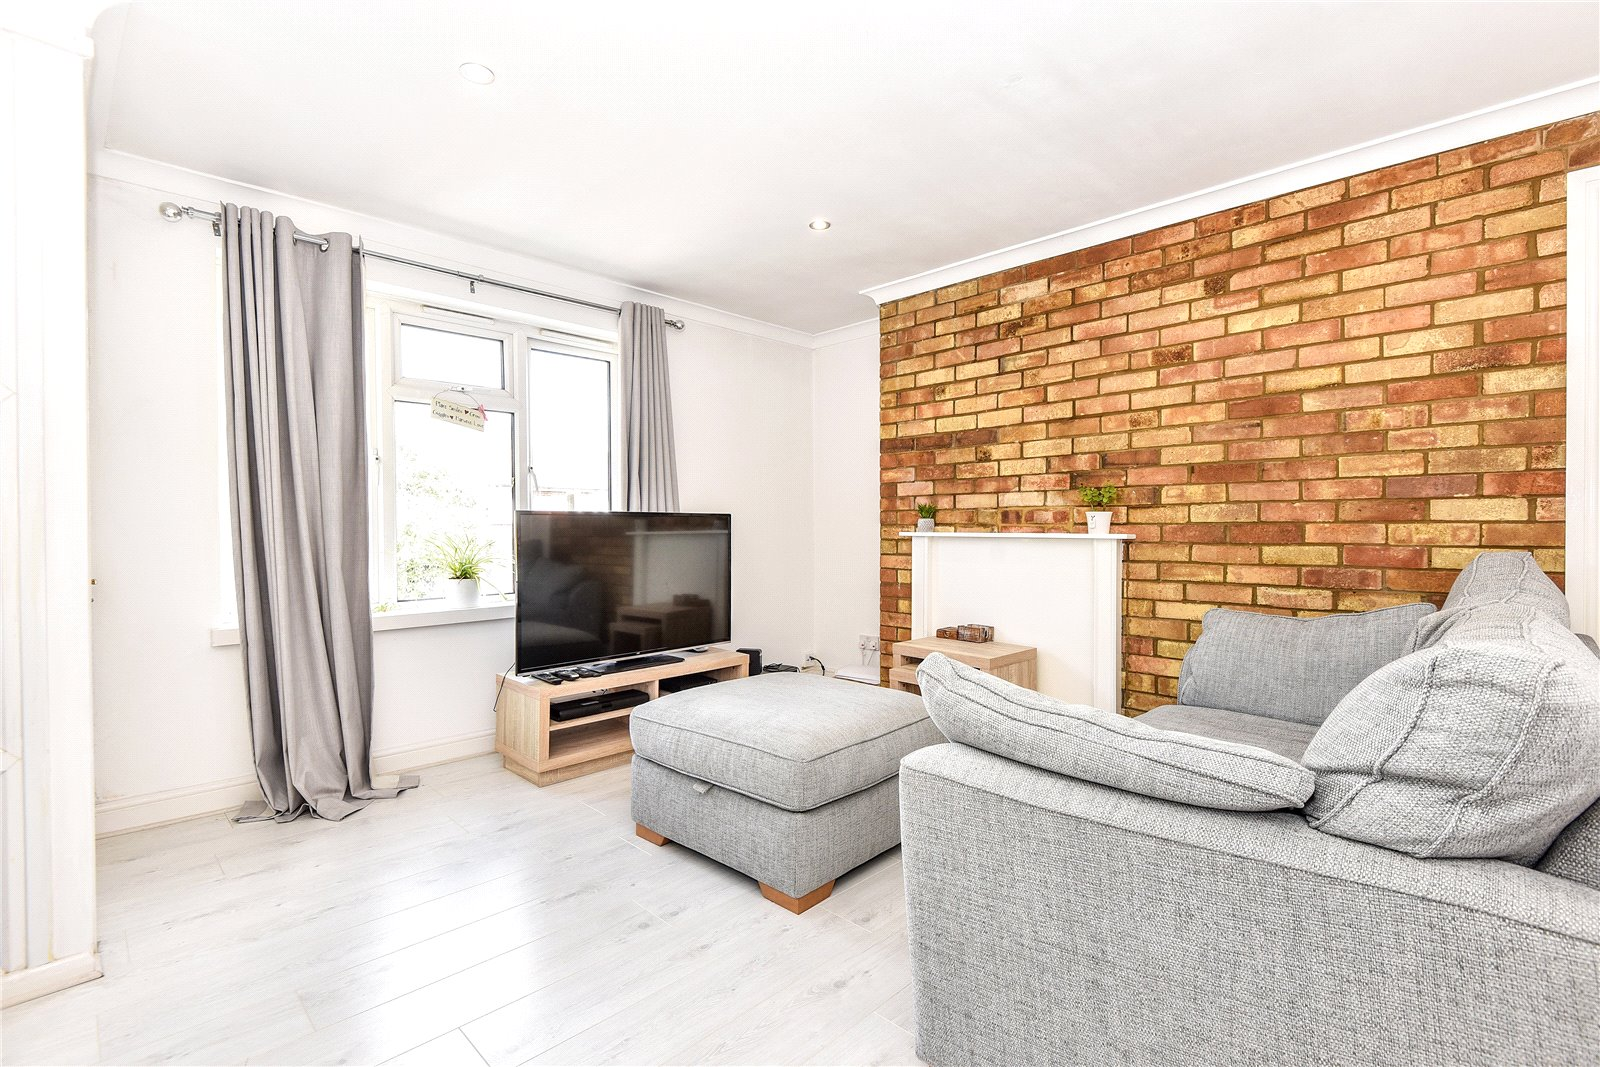 2 Bedrooms Apartment Flat for sale in Shepherds Close, Hurley, Maidenhead, Berkshire, SL6